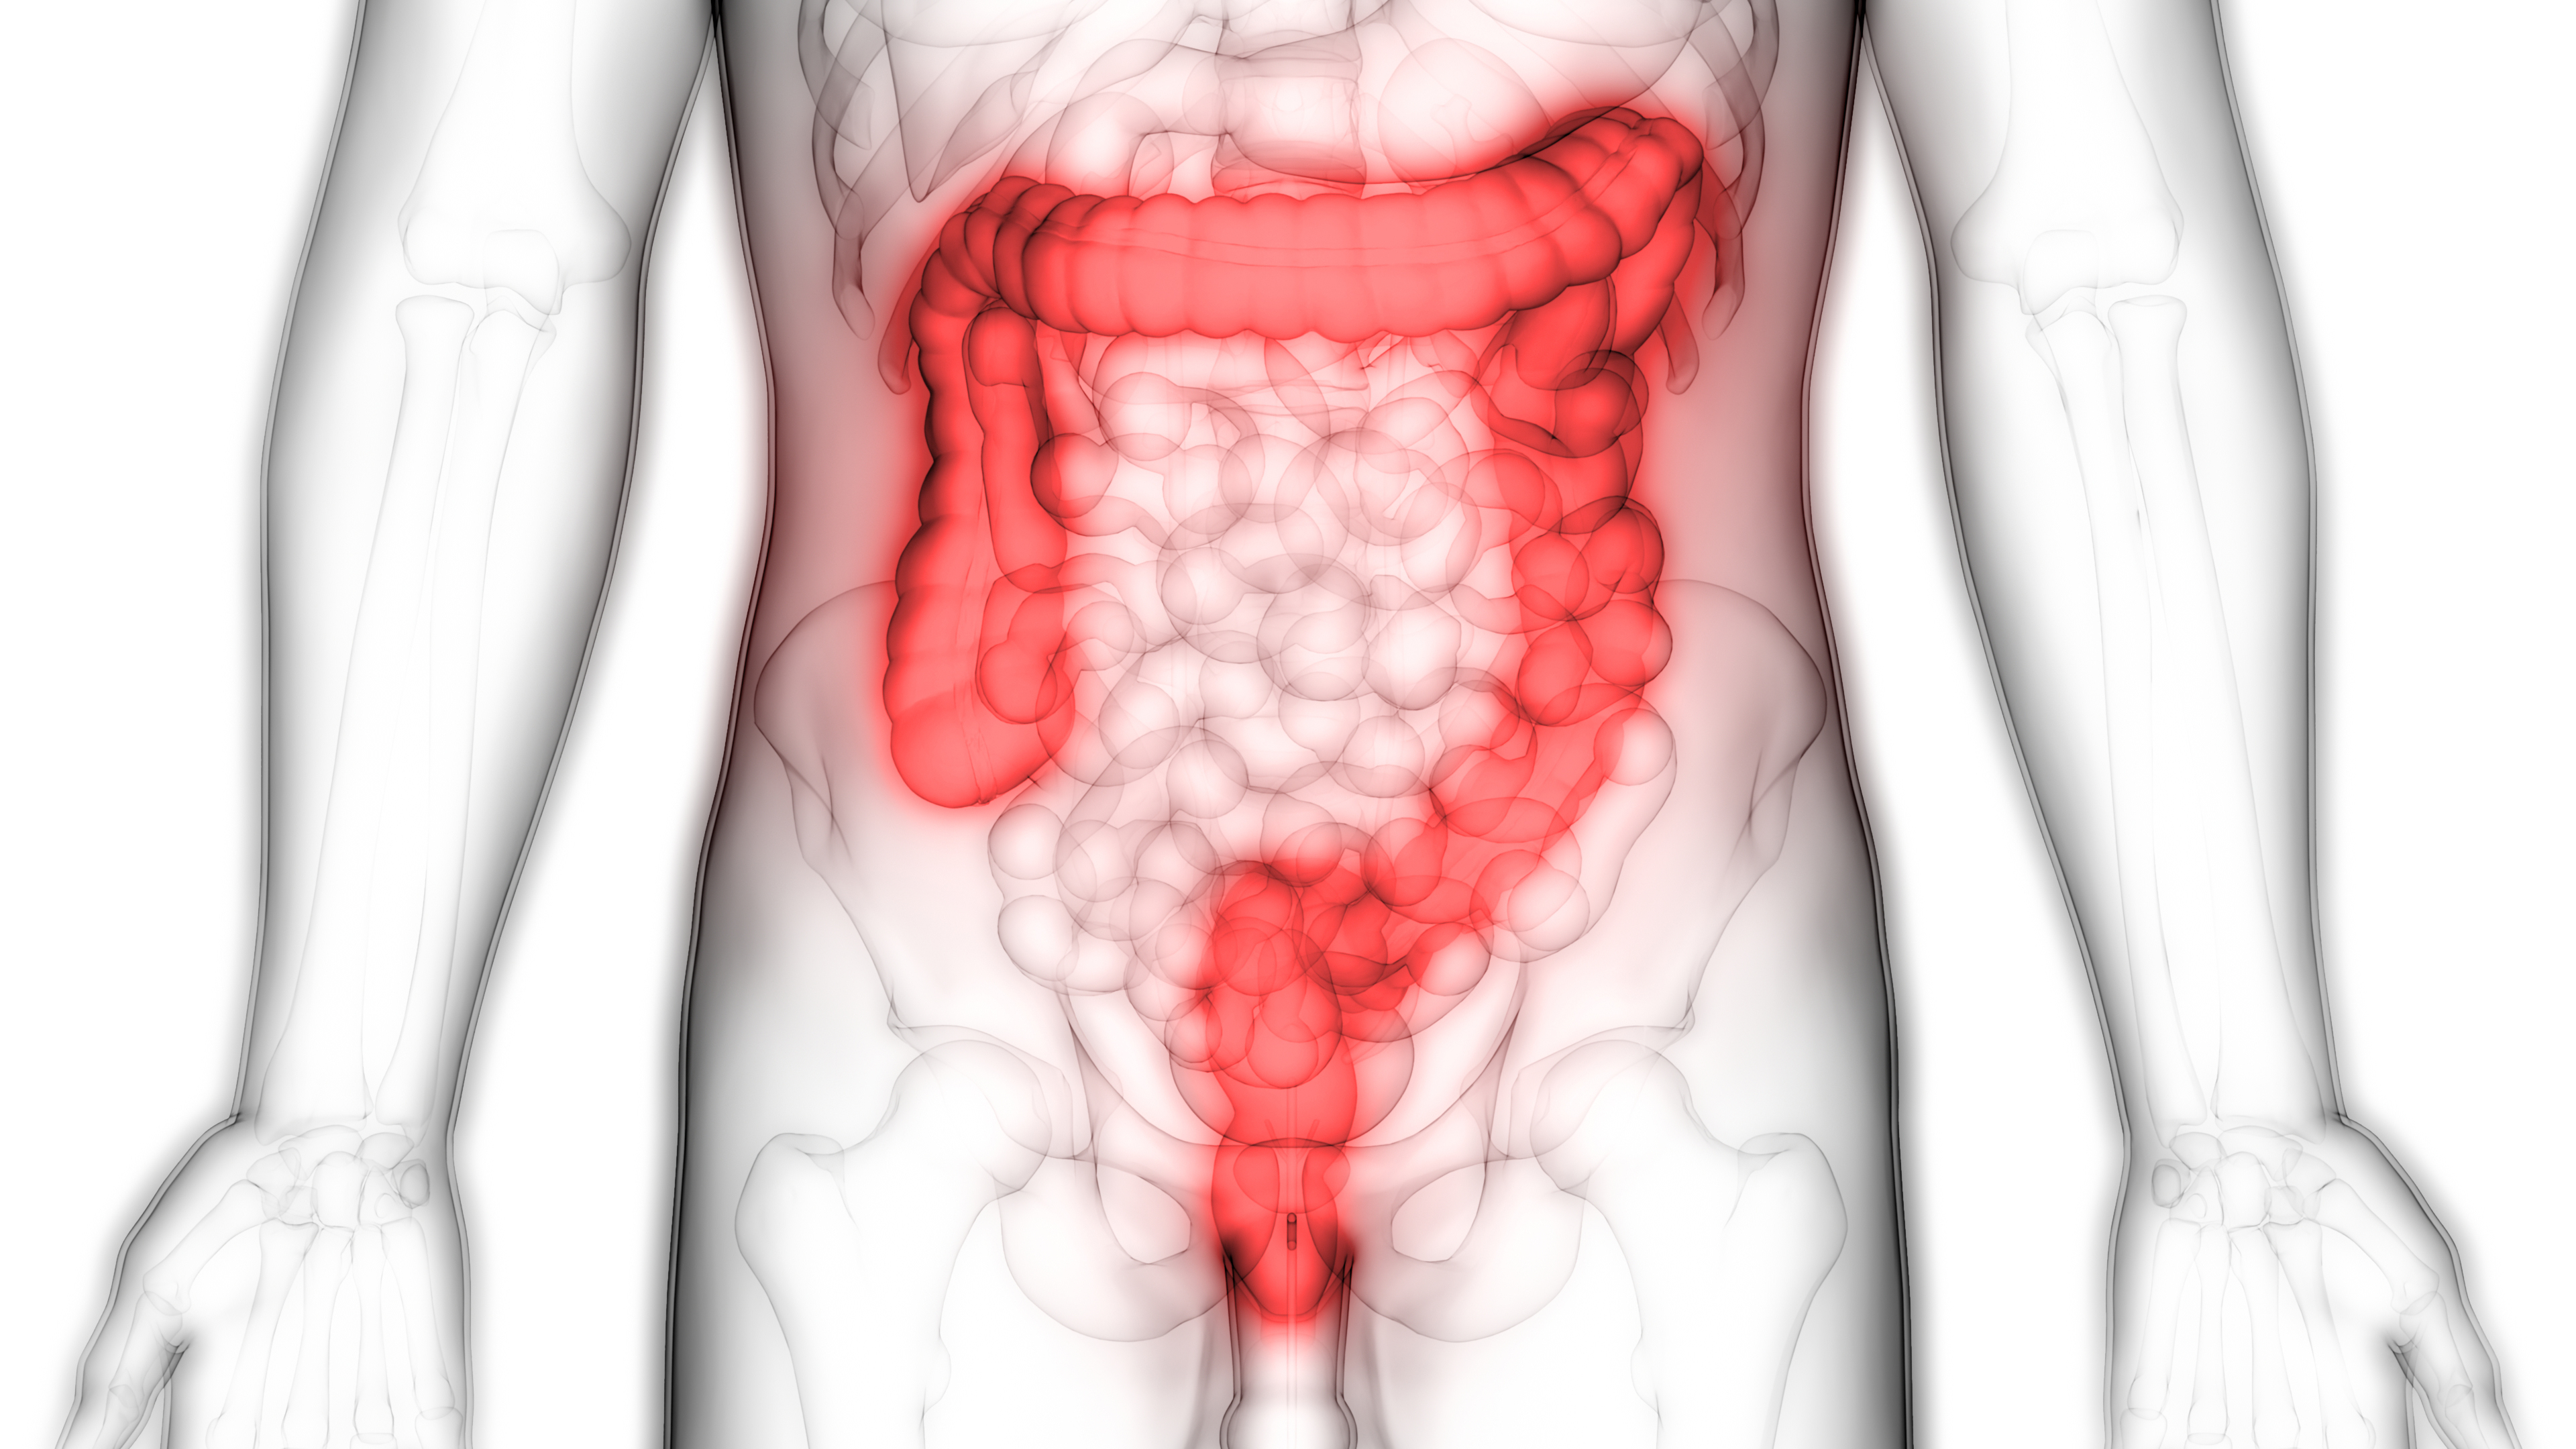 Distinct gut microbiome patterns associate with different subtypes of colorectal cancer